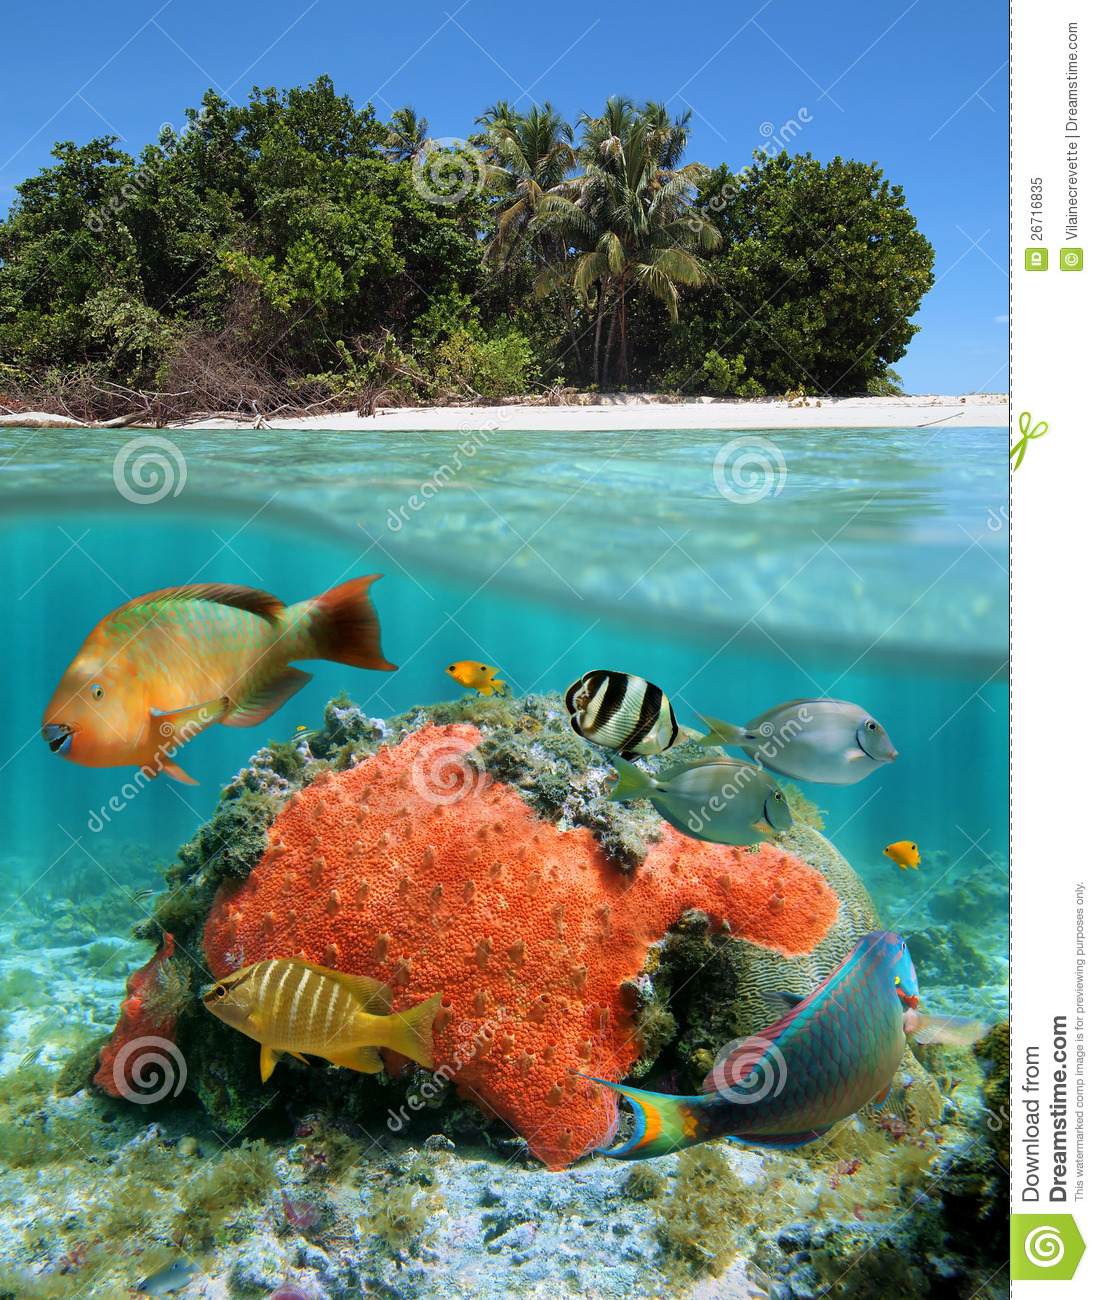 Under The Sea Amp Above The Land Stock Image Image 26716835